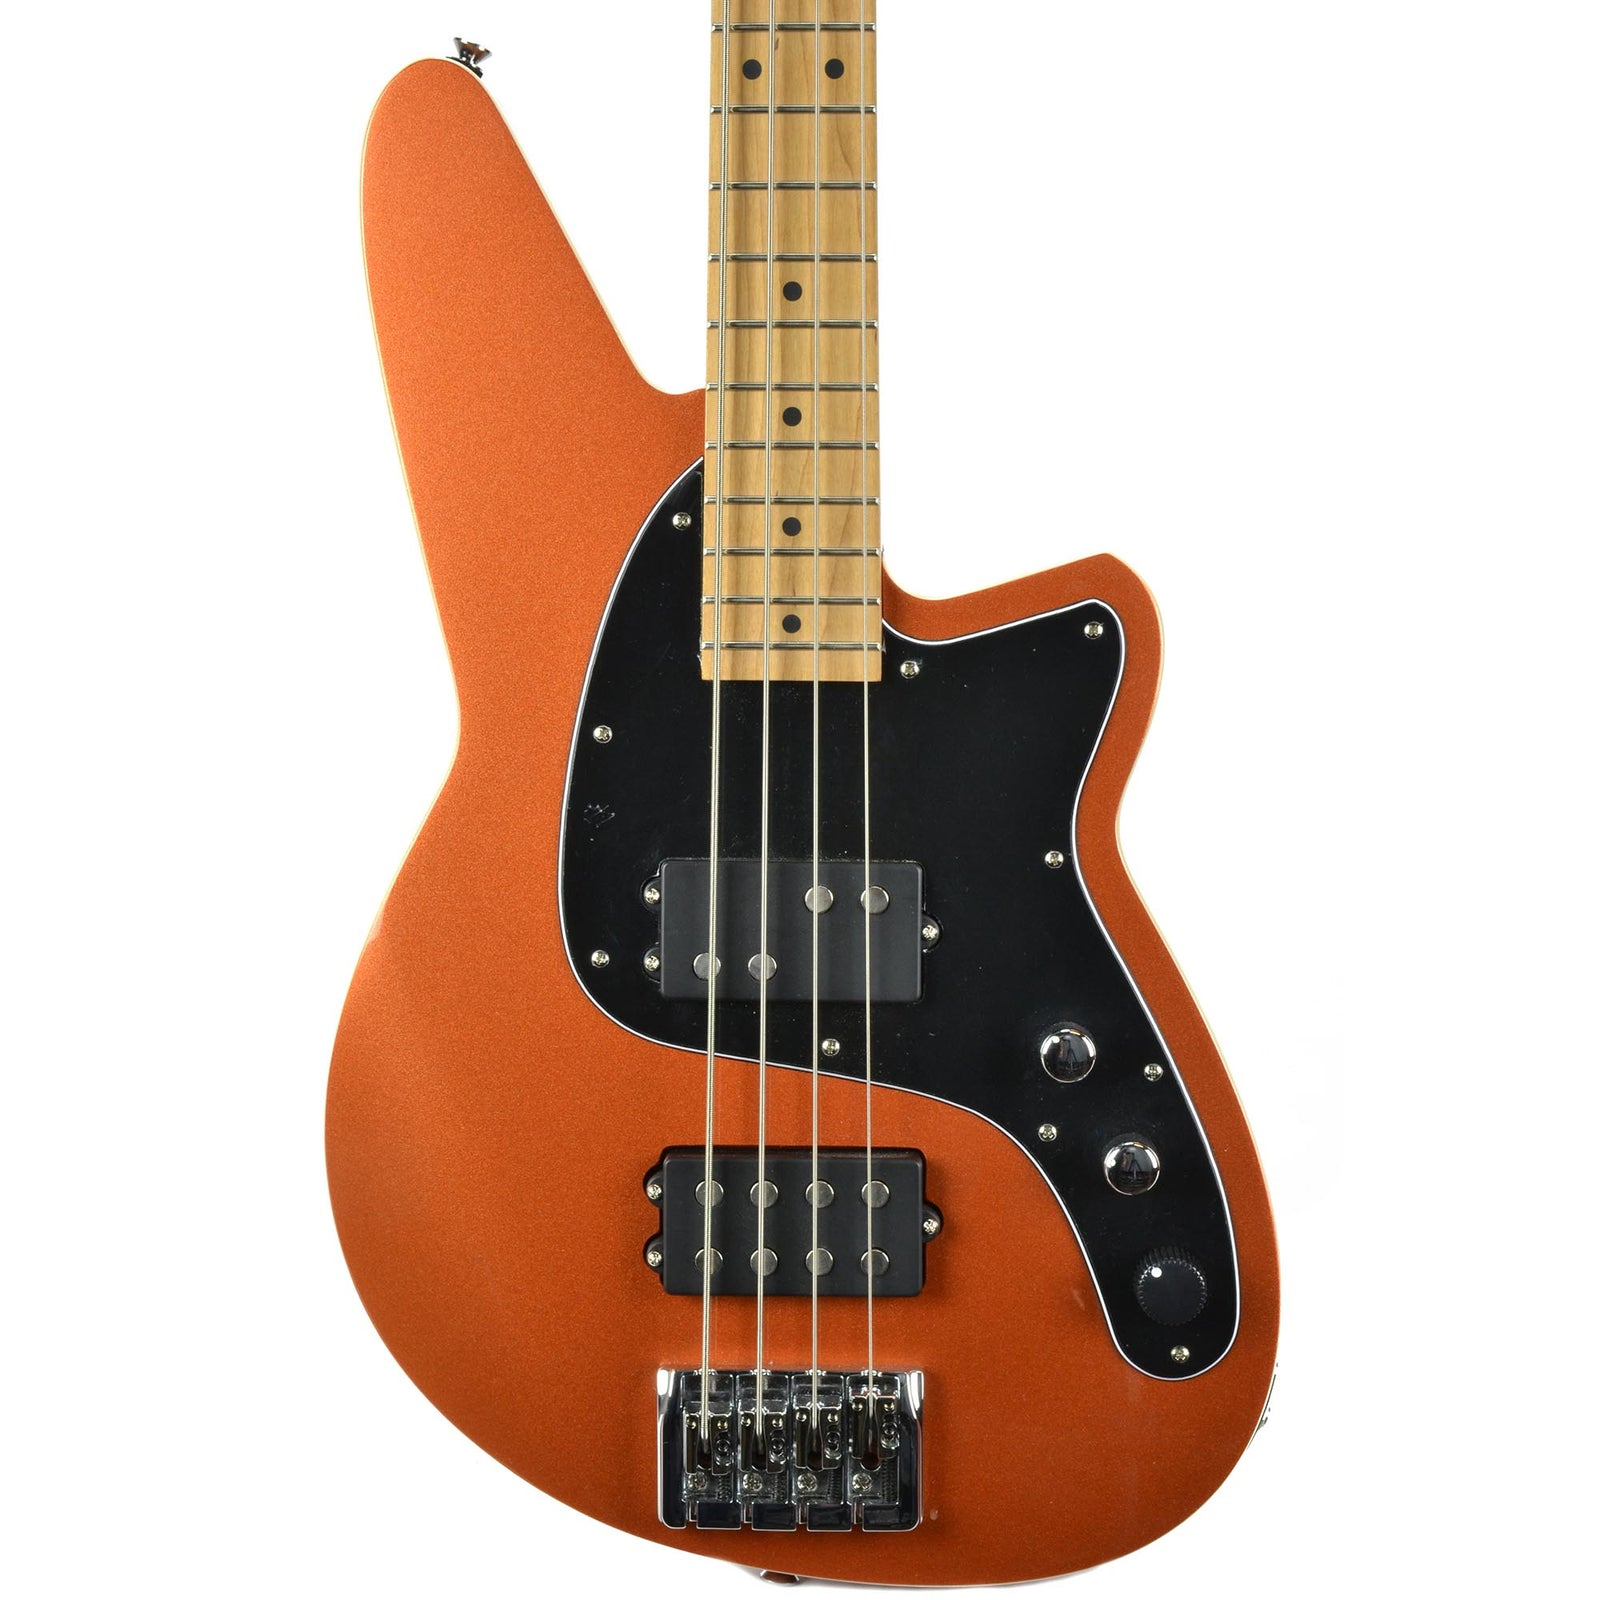 Reverend Mercalli 4 Bass - Roasted Neck - Metallic Copper Fire